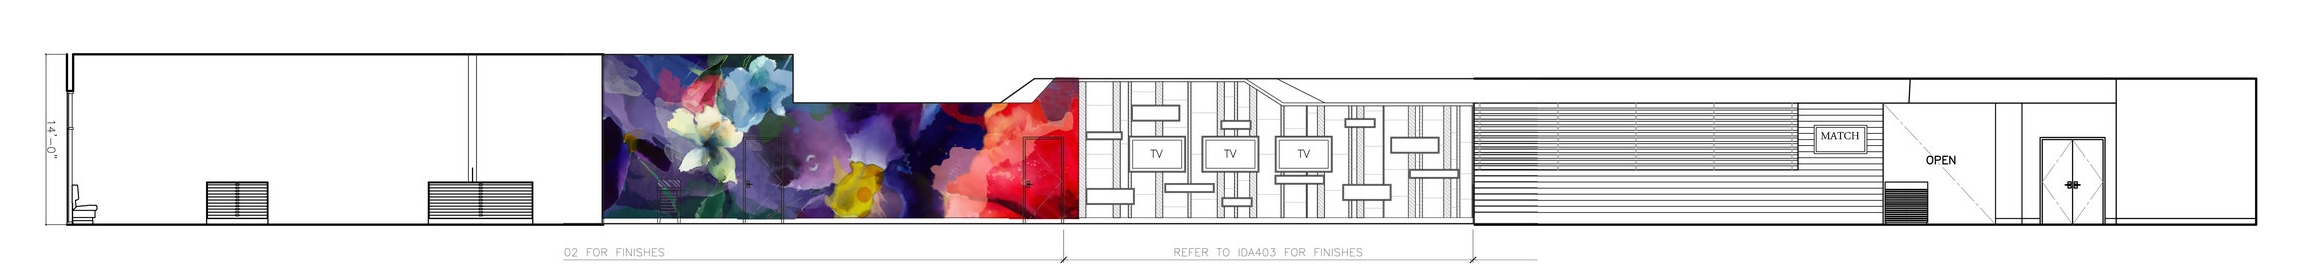 West Gaming Floor Wall Elevation